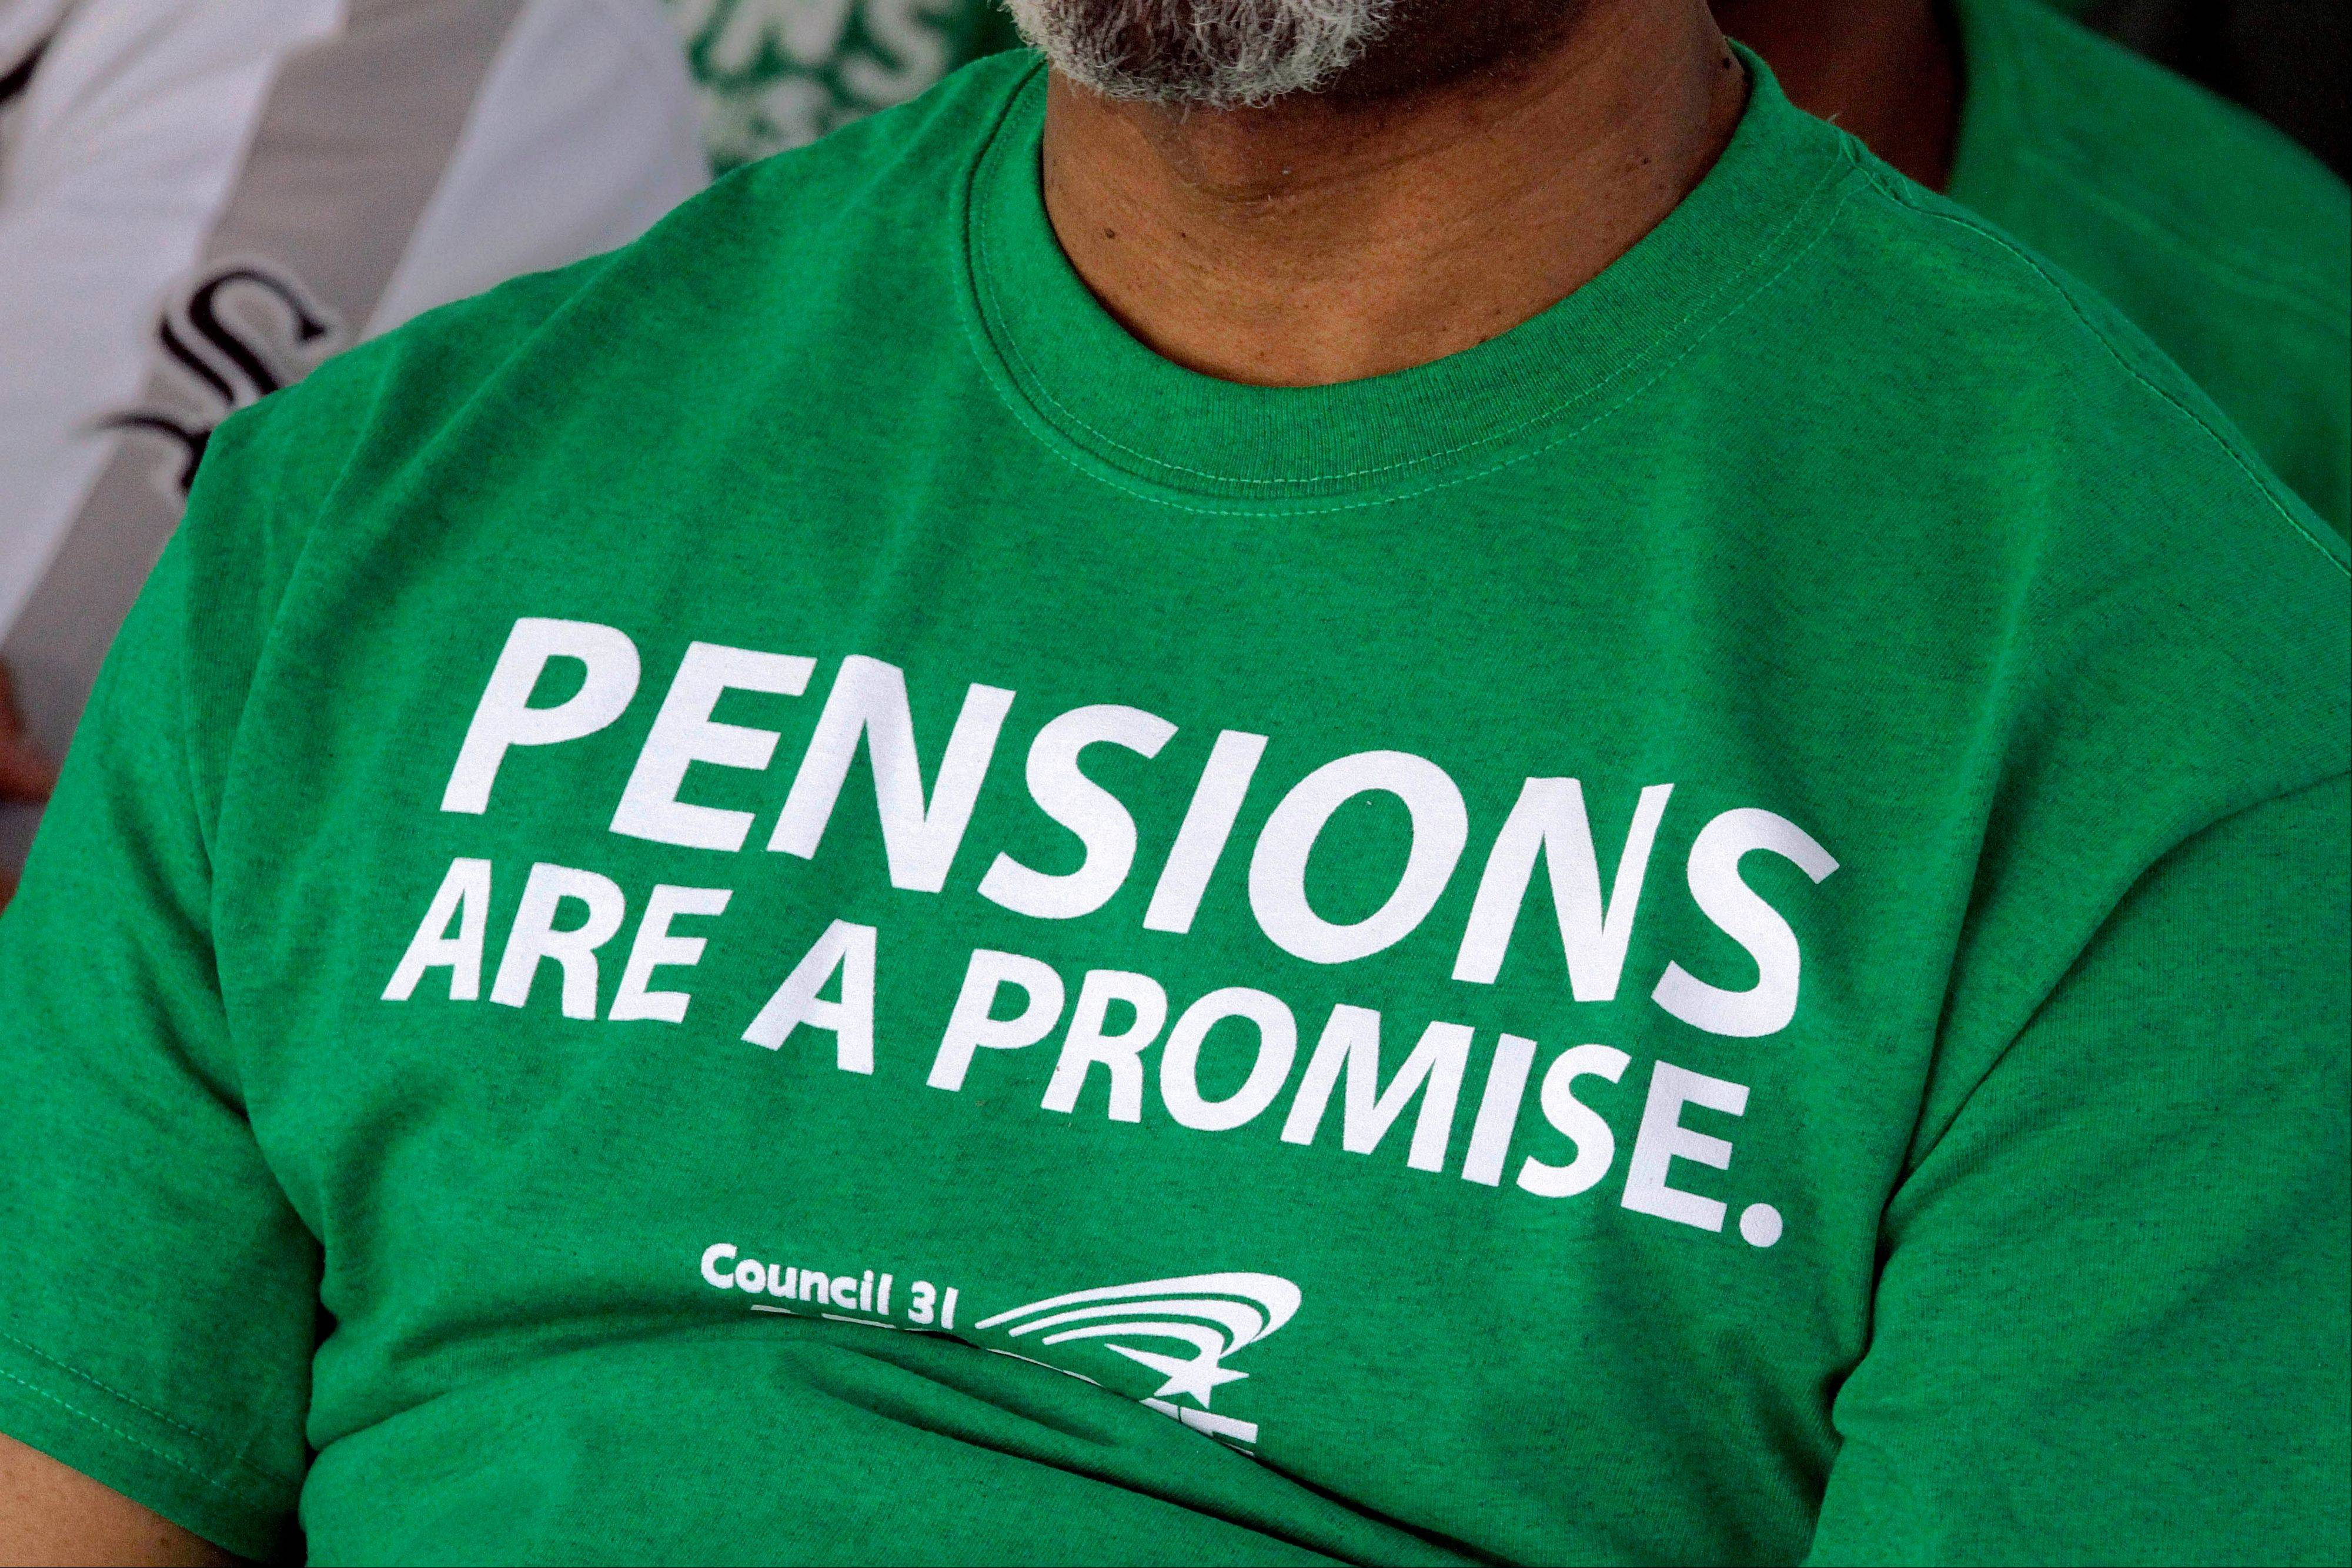 S&P lowers Illinois credit rating over pensions